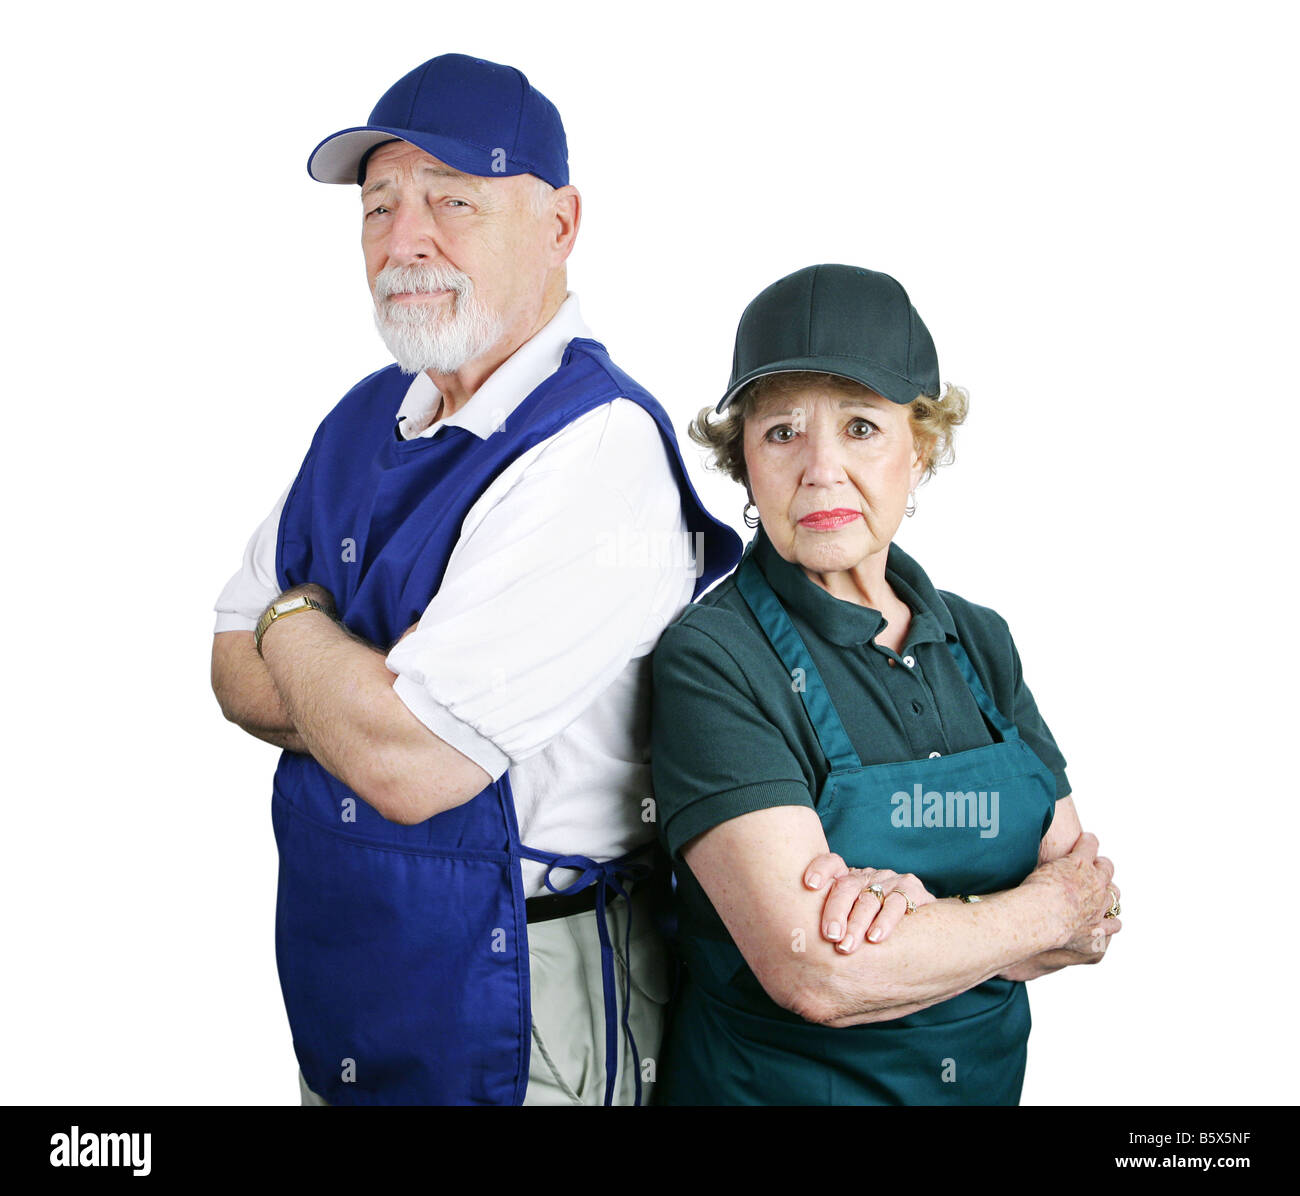 Unhappy senior couple forced to work menial service jobs because of poor retirement planning Isolated on white - Stock Image